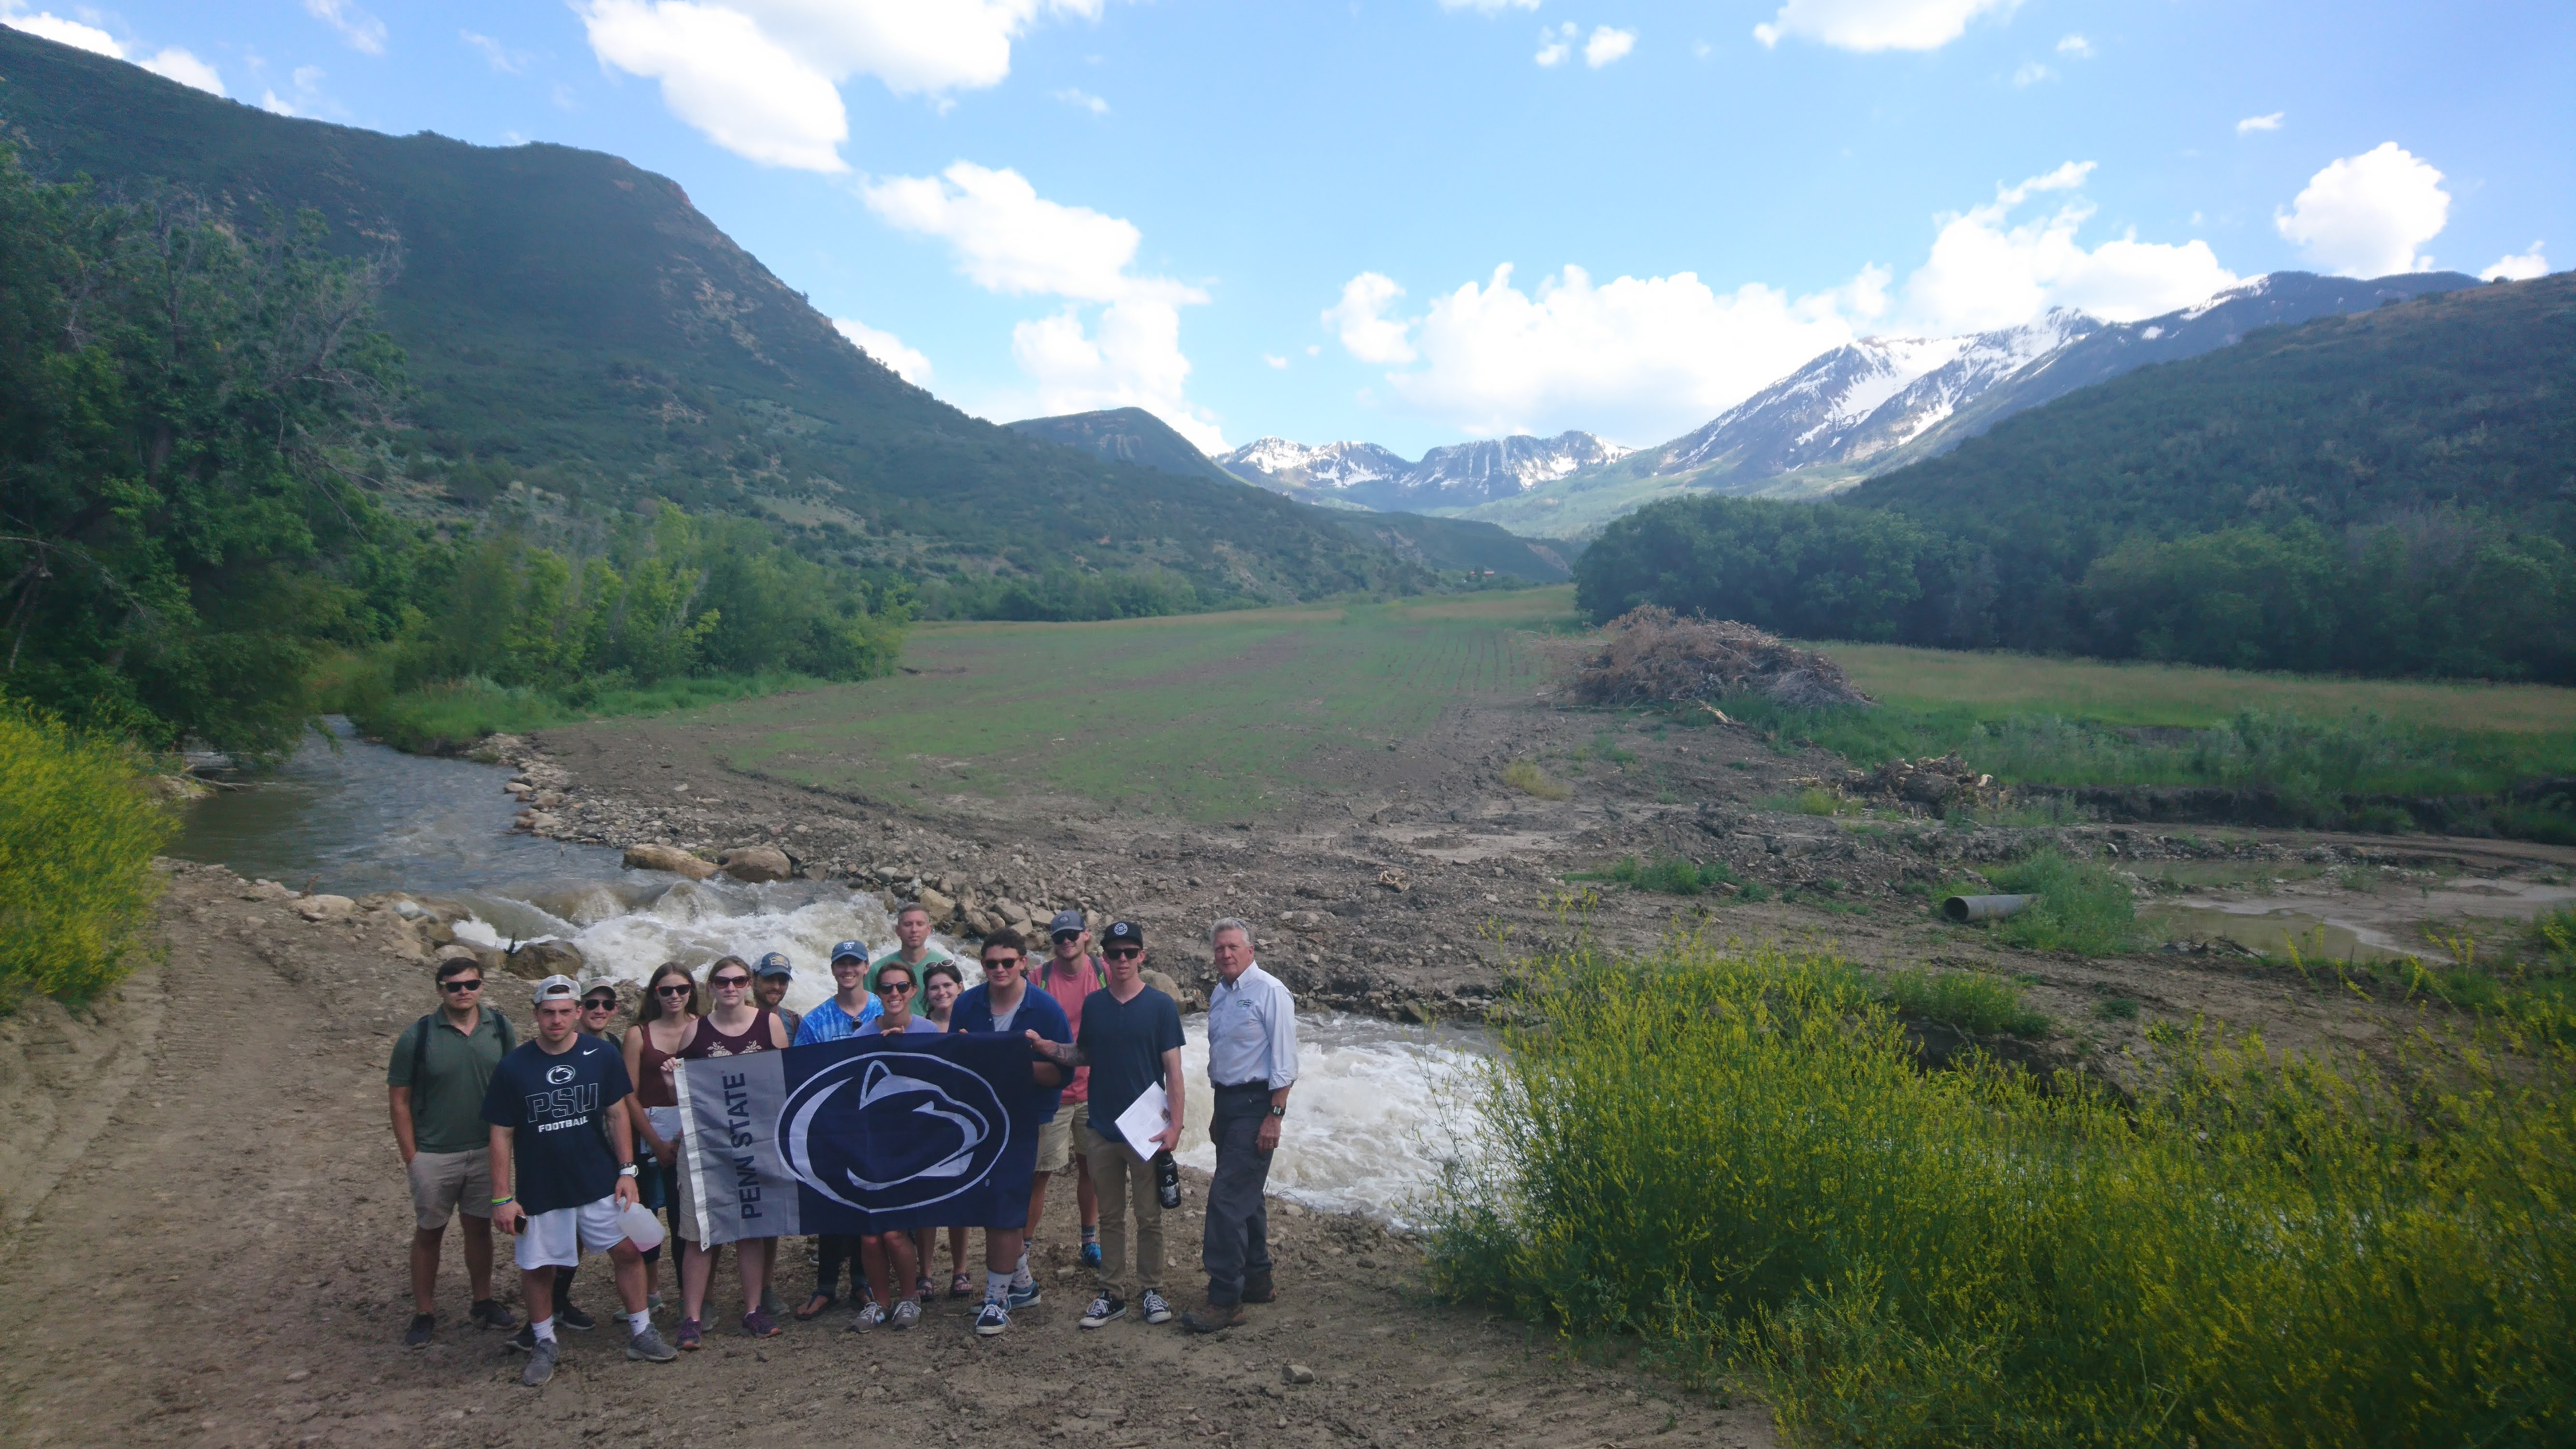 A group of Penn State students standing in front of mountain scenery with a Penn State flag